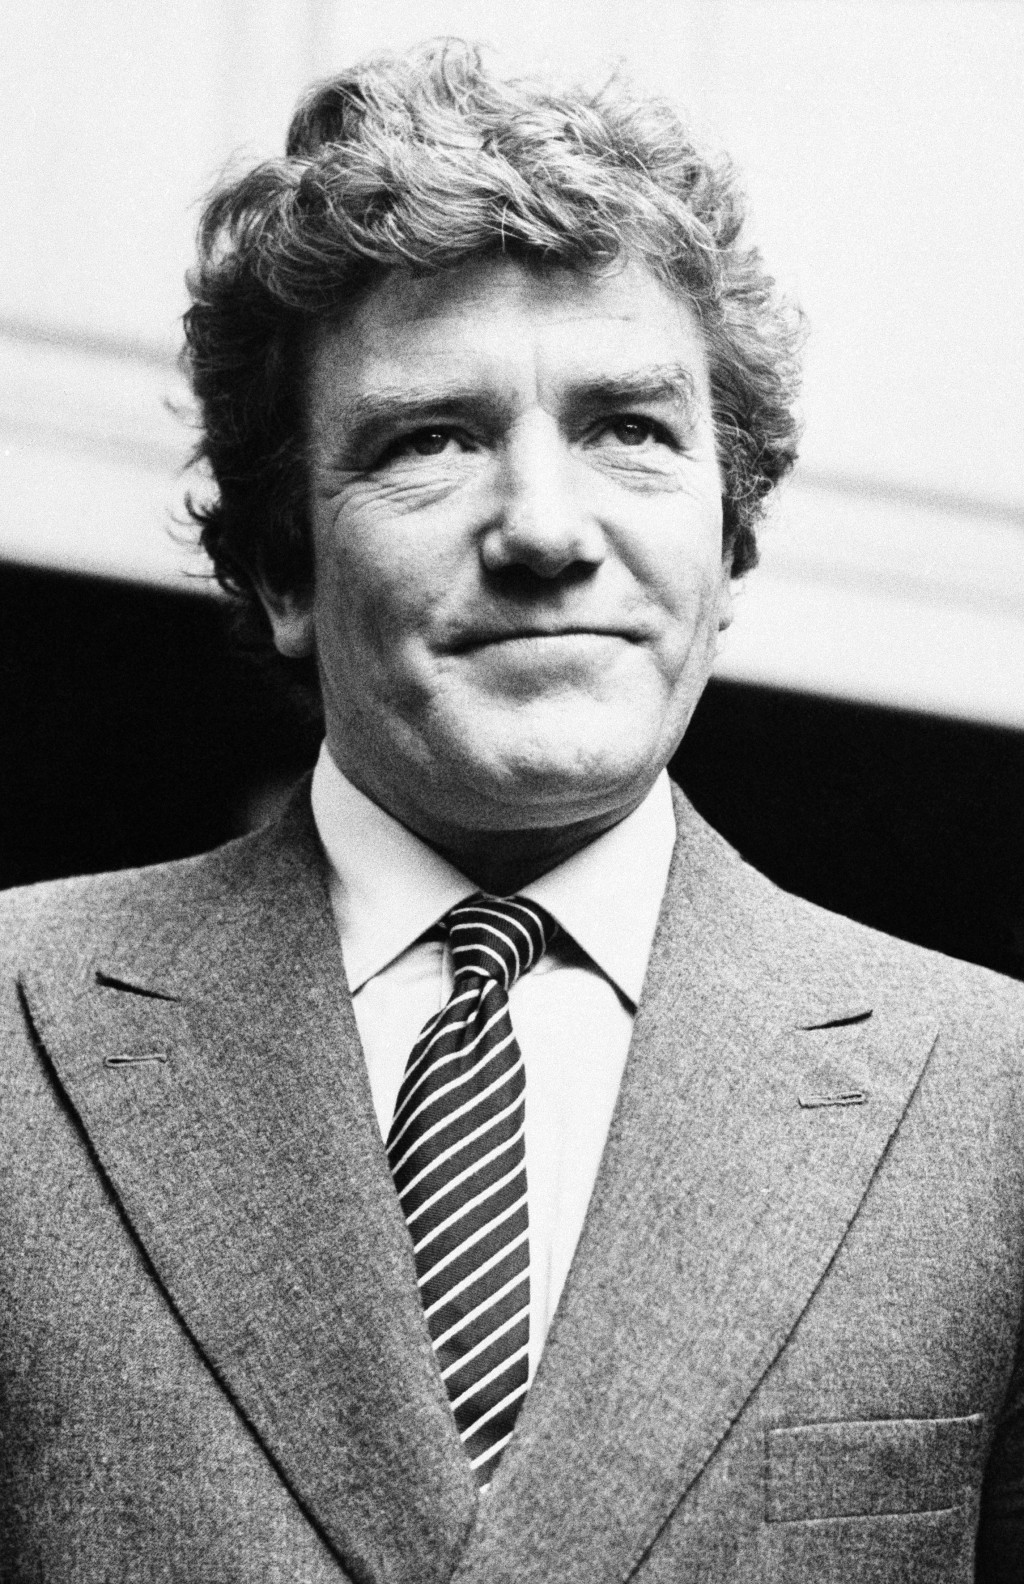 """British actor Albert Finney appears in London on Sept. 18, 1980. Finney, the Academy Award-nominated star of films """"Tom Jones,"""" """"Erin Brockovich,"""" and..."""